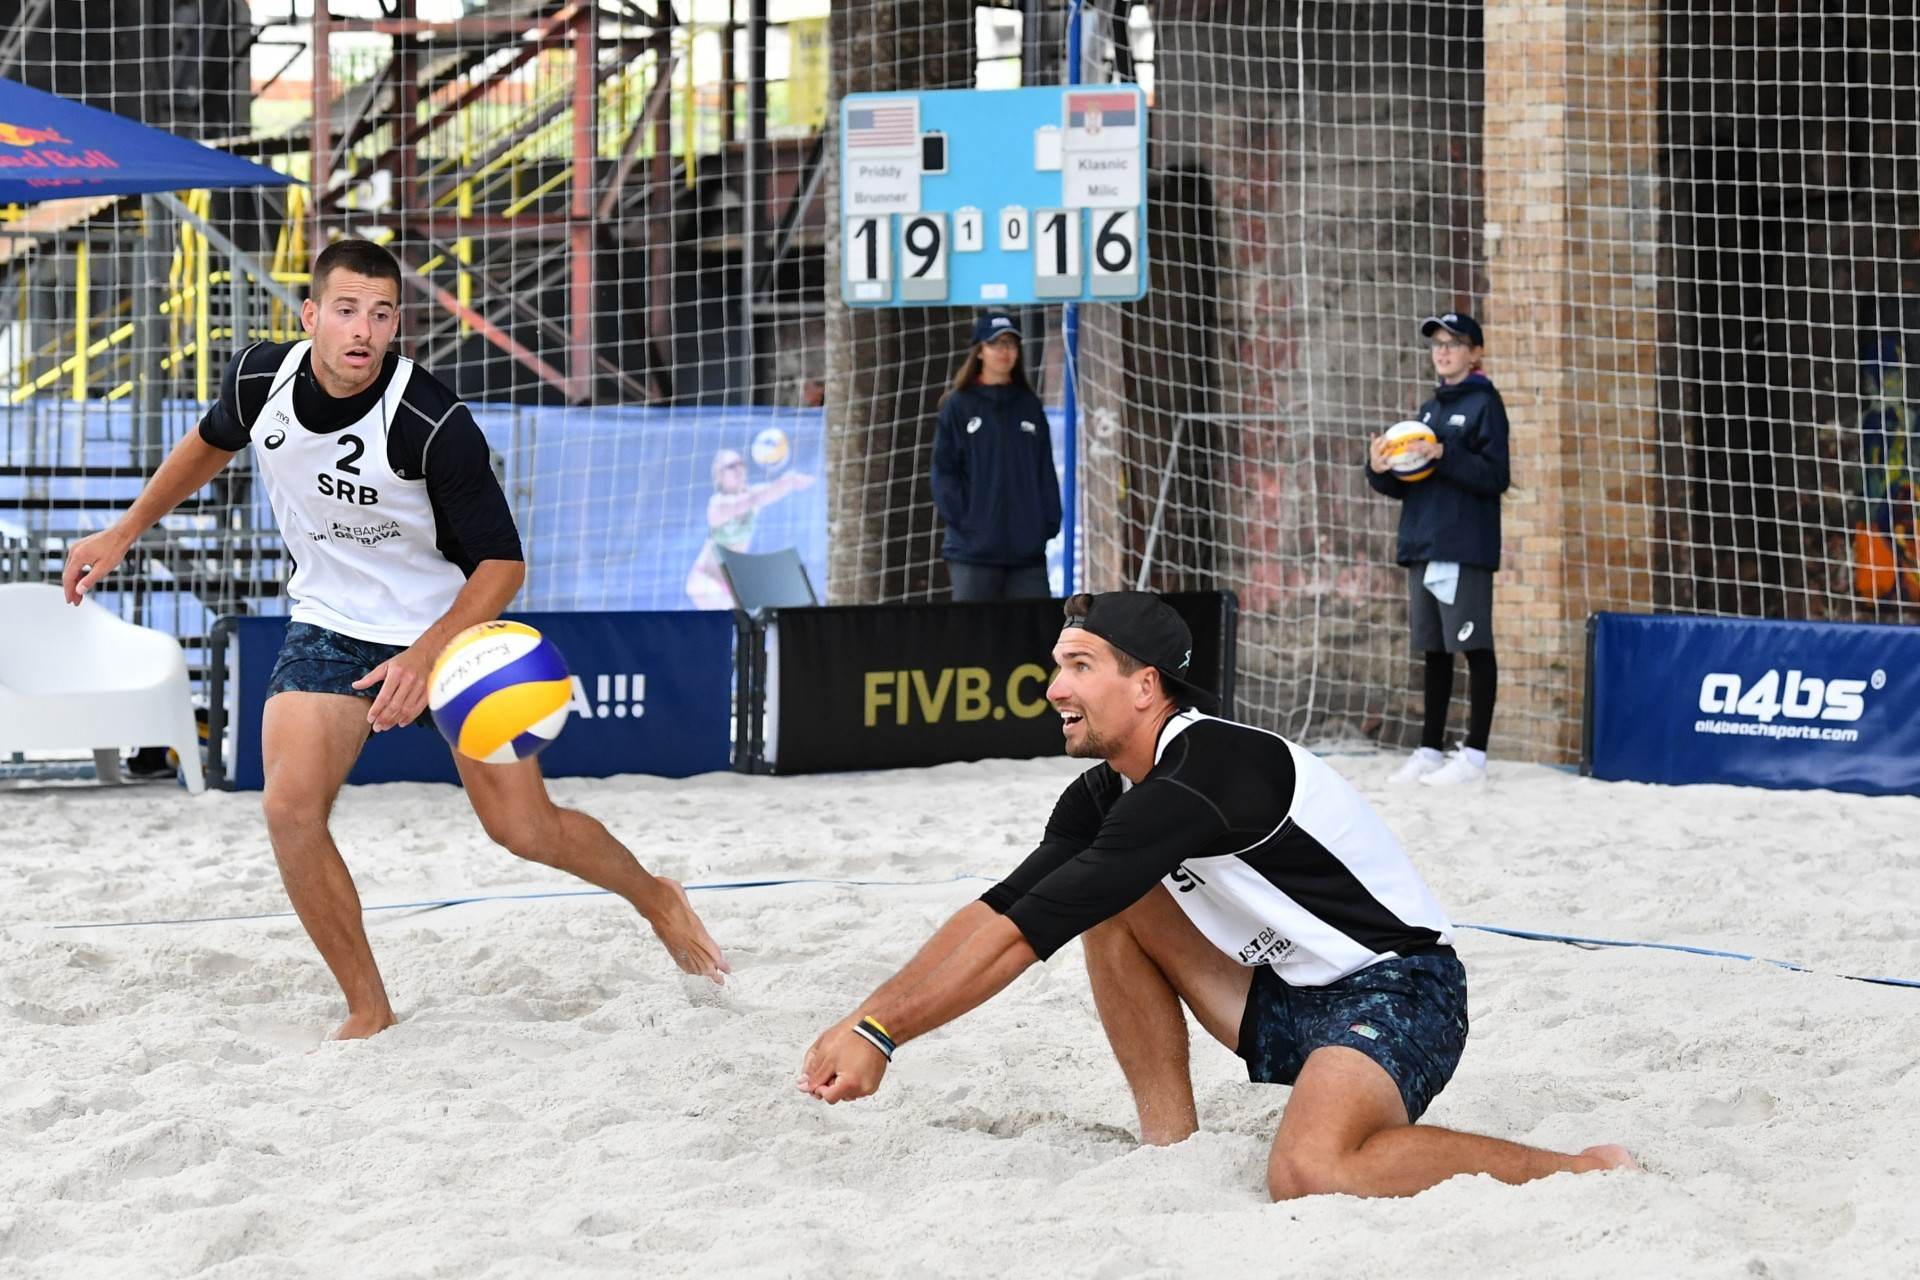 Serbians Milic and Klasnic will defend their country in Novi Sad (Photocredit: FIVB)